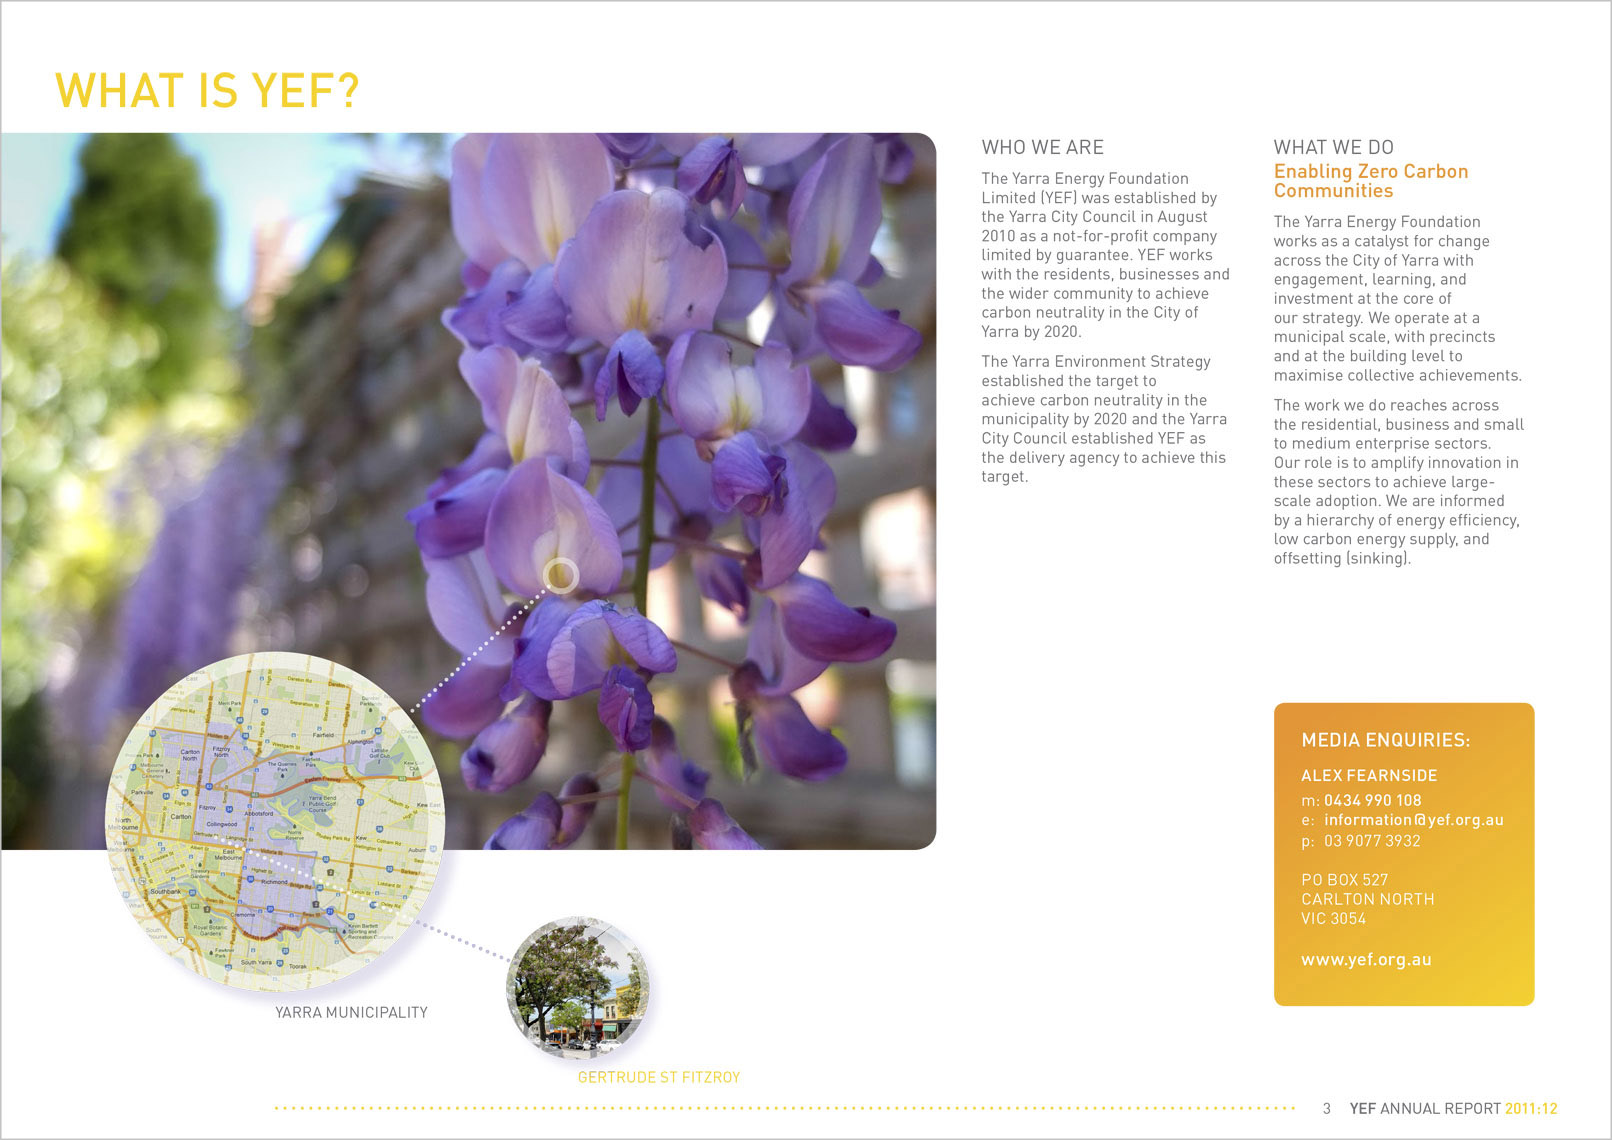 Designed by Shane Nagle YEF Yarra Energy Foundation Annual Report 2012